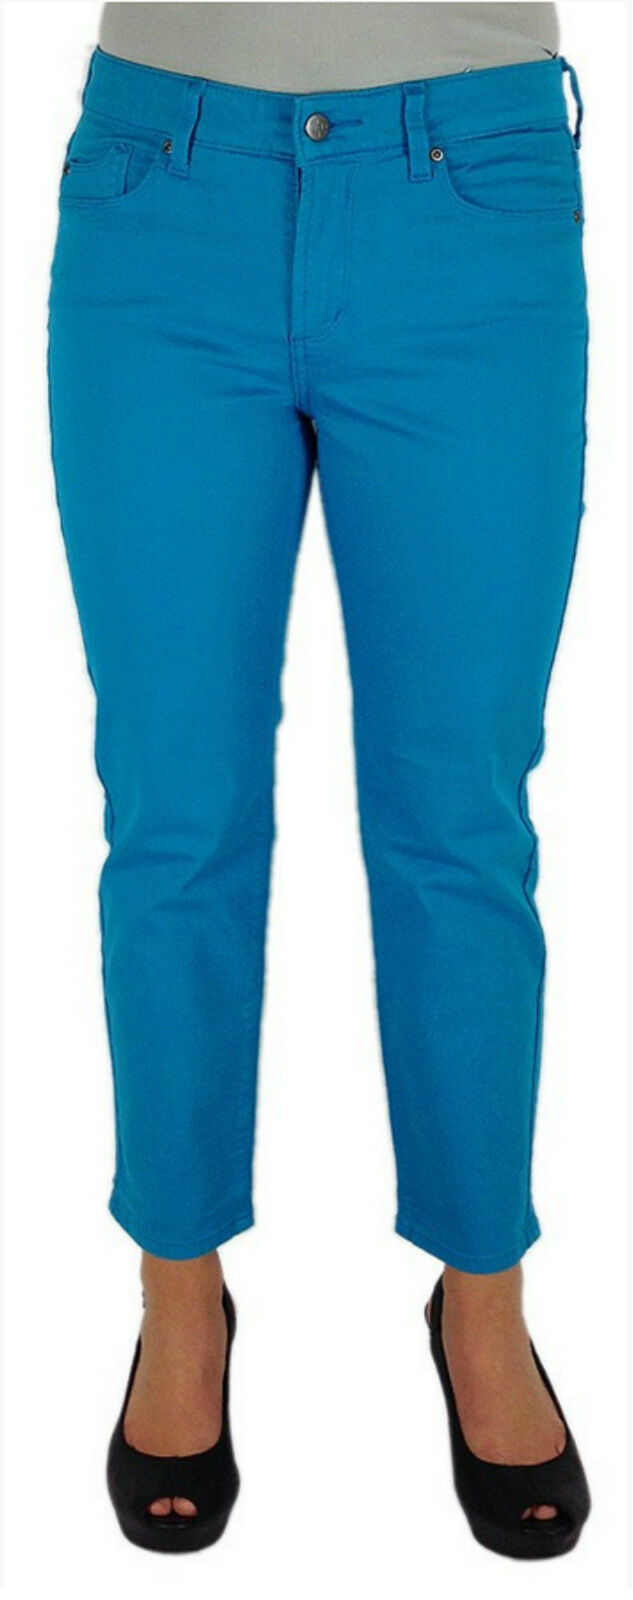 119 NEW NYDJ NOT YOUR DAUGHTERS JEANS ALISHA PANTS POOLSIDE SIZE 14 16,